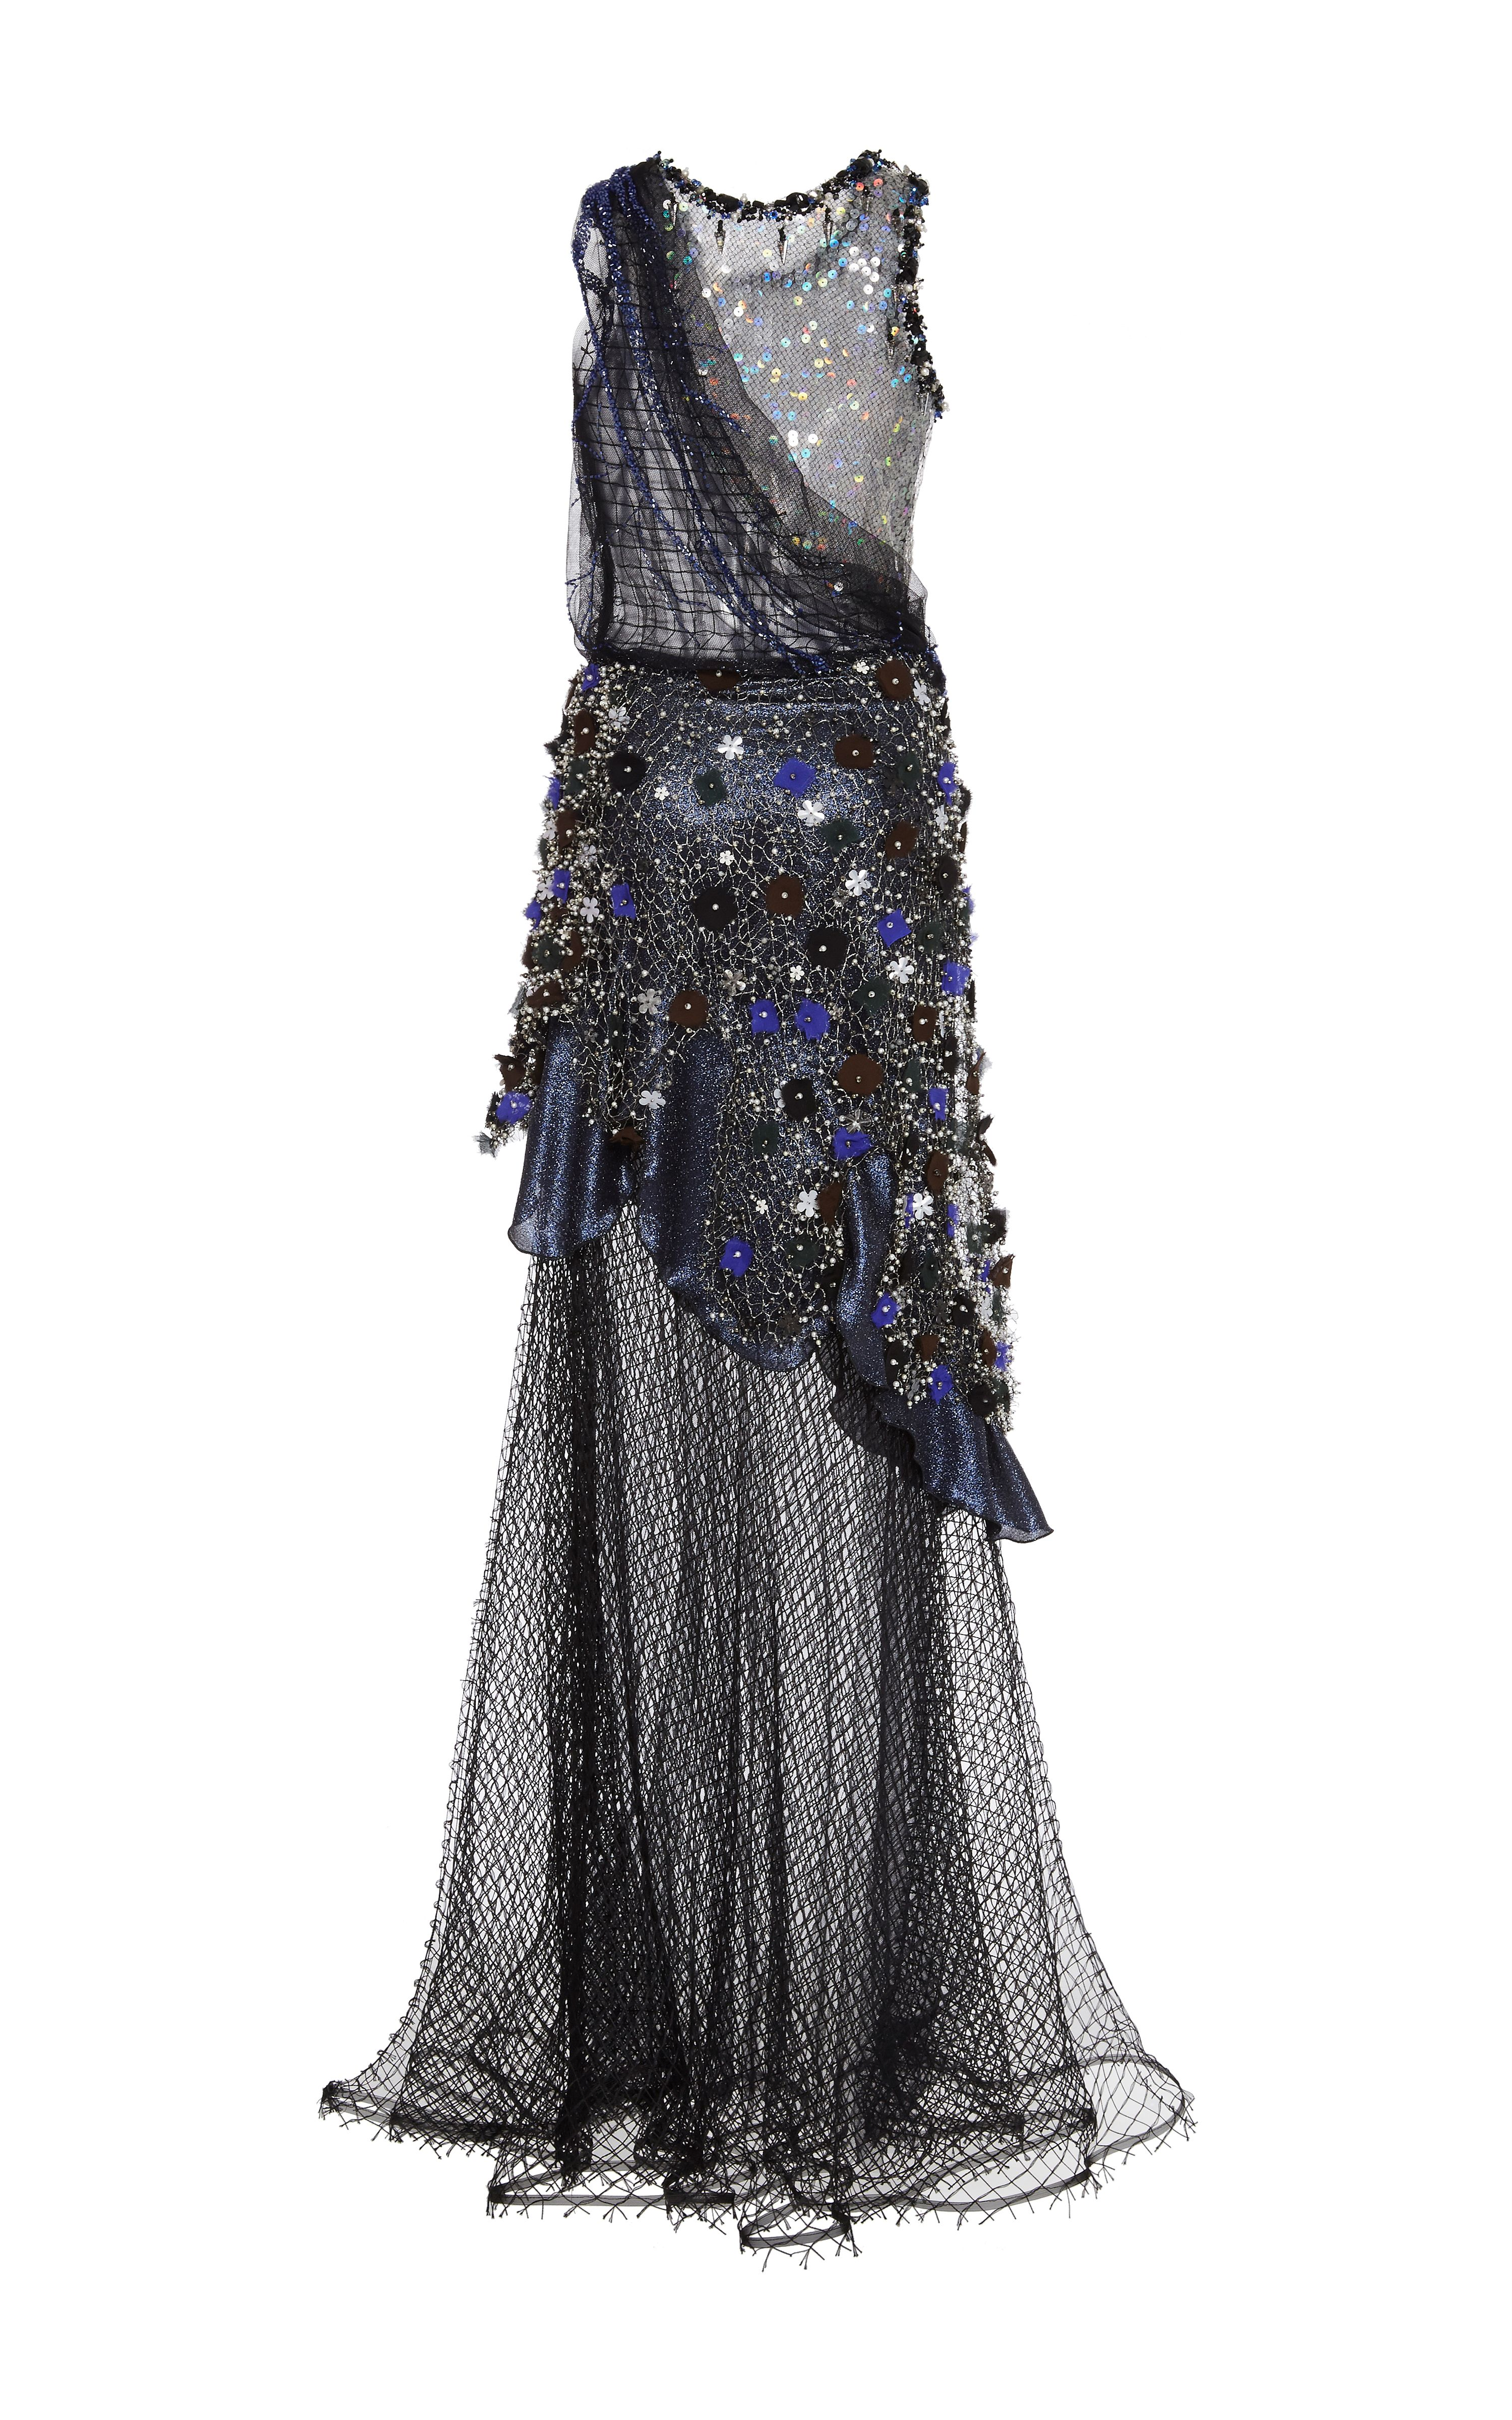 429a5235837 Embroidered Pearl And Beaded Net Gown With Iridescent Sequins And Swarovski  Crystals by Rodarte for Preorder on Moda Operandi jaglady